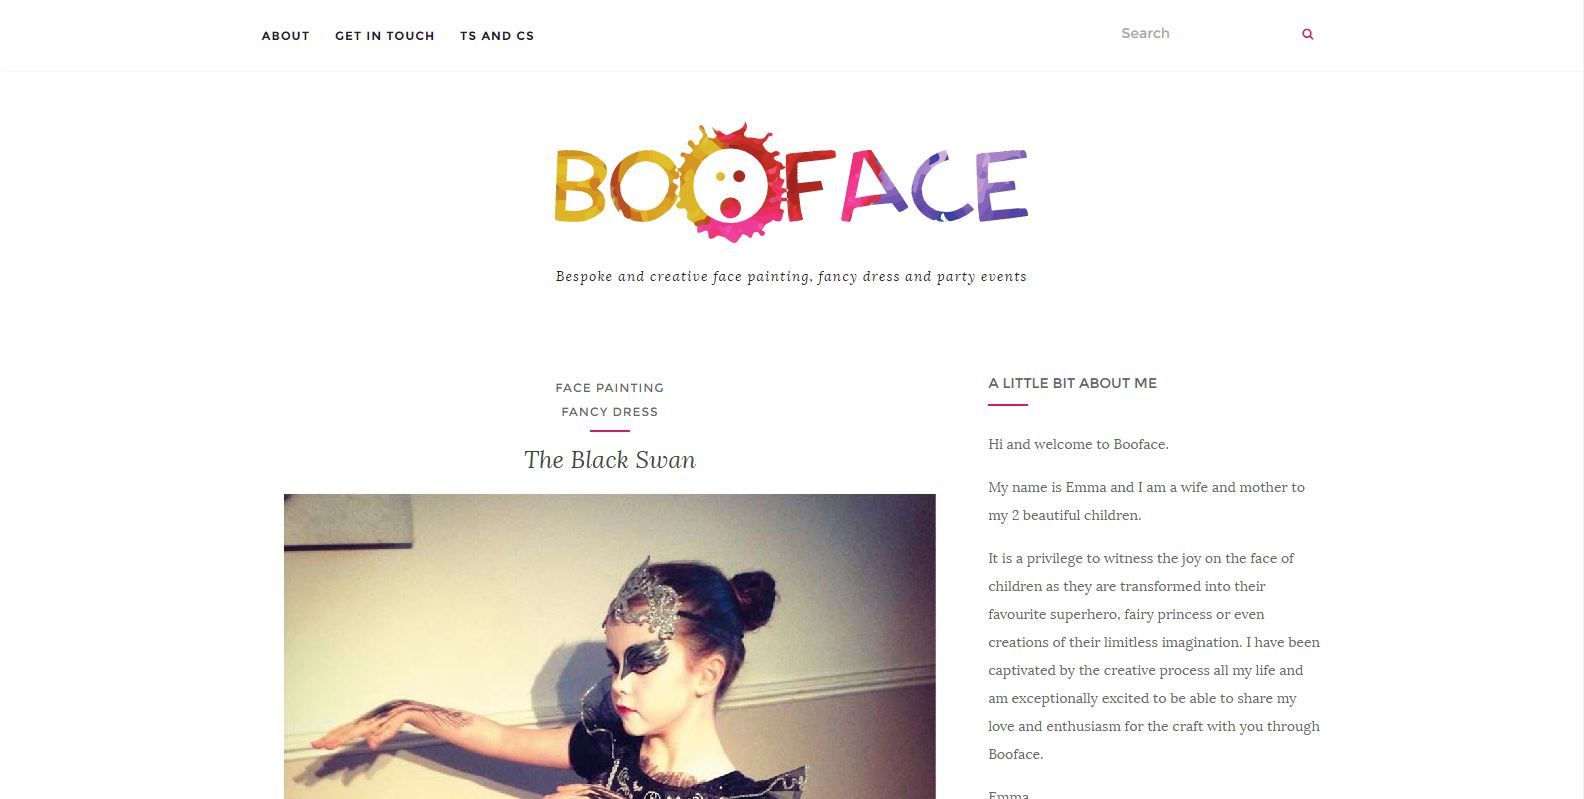 booface Capture